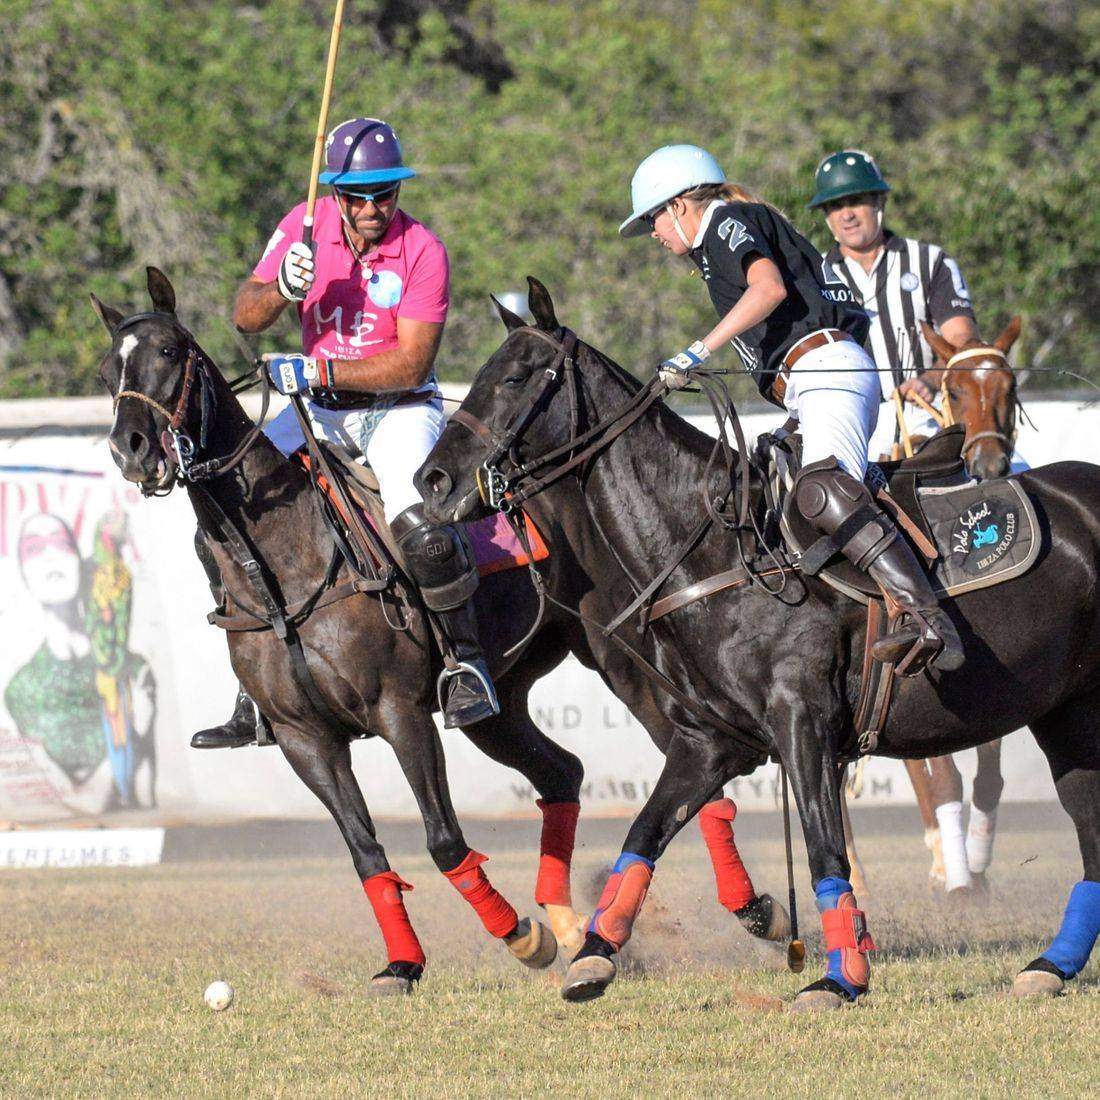 ibiza mountains, ibiza polo club, learn to play polo, spain polo, spain riding holiday